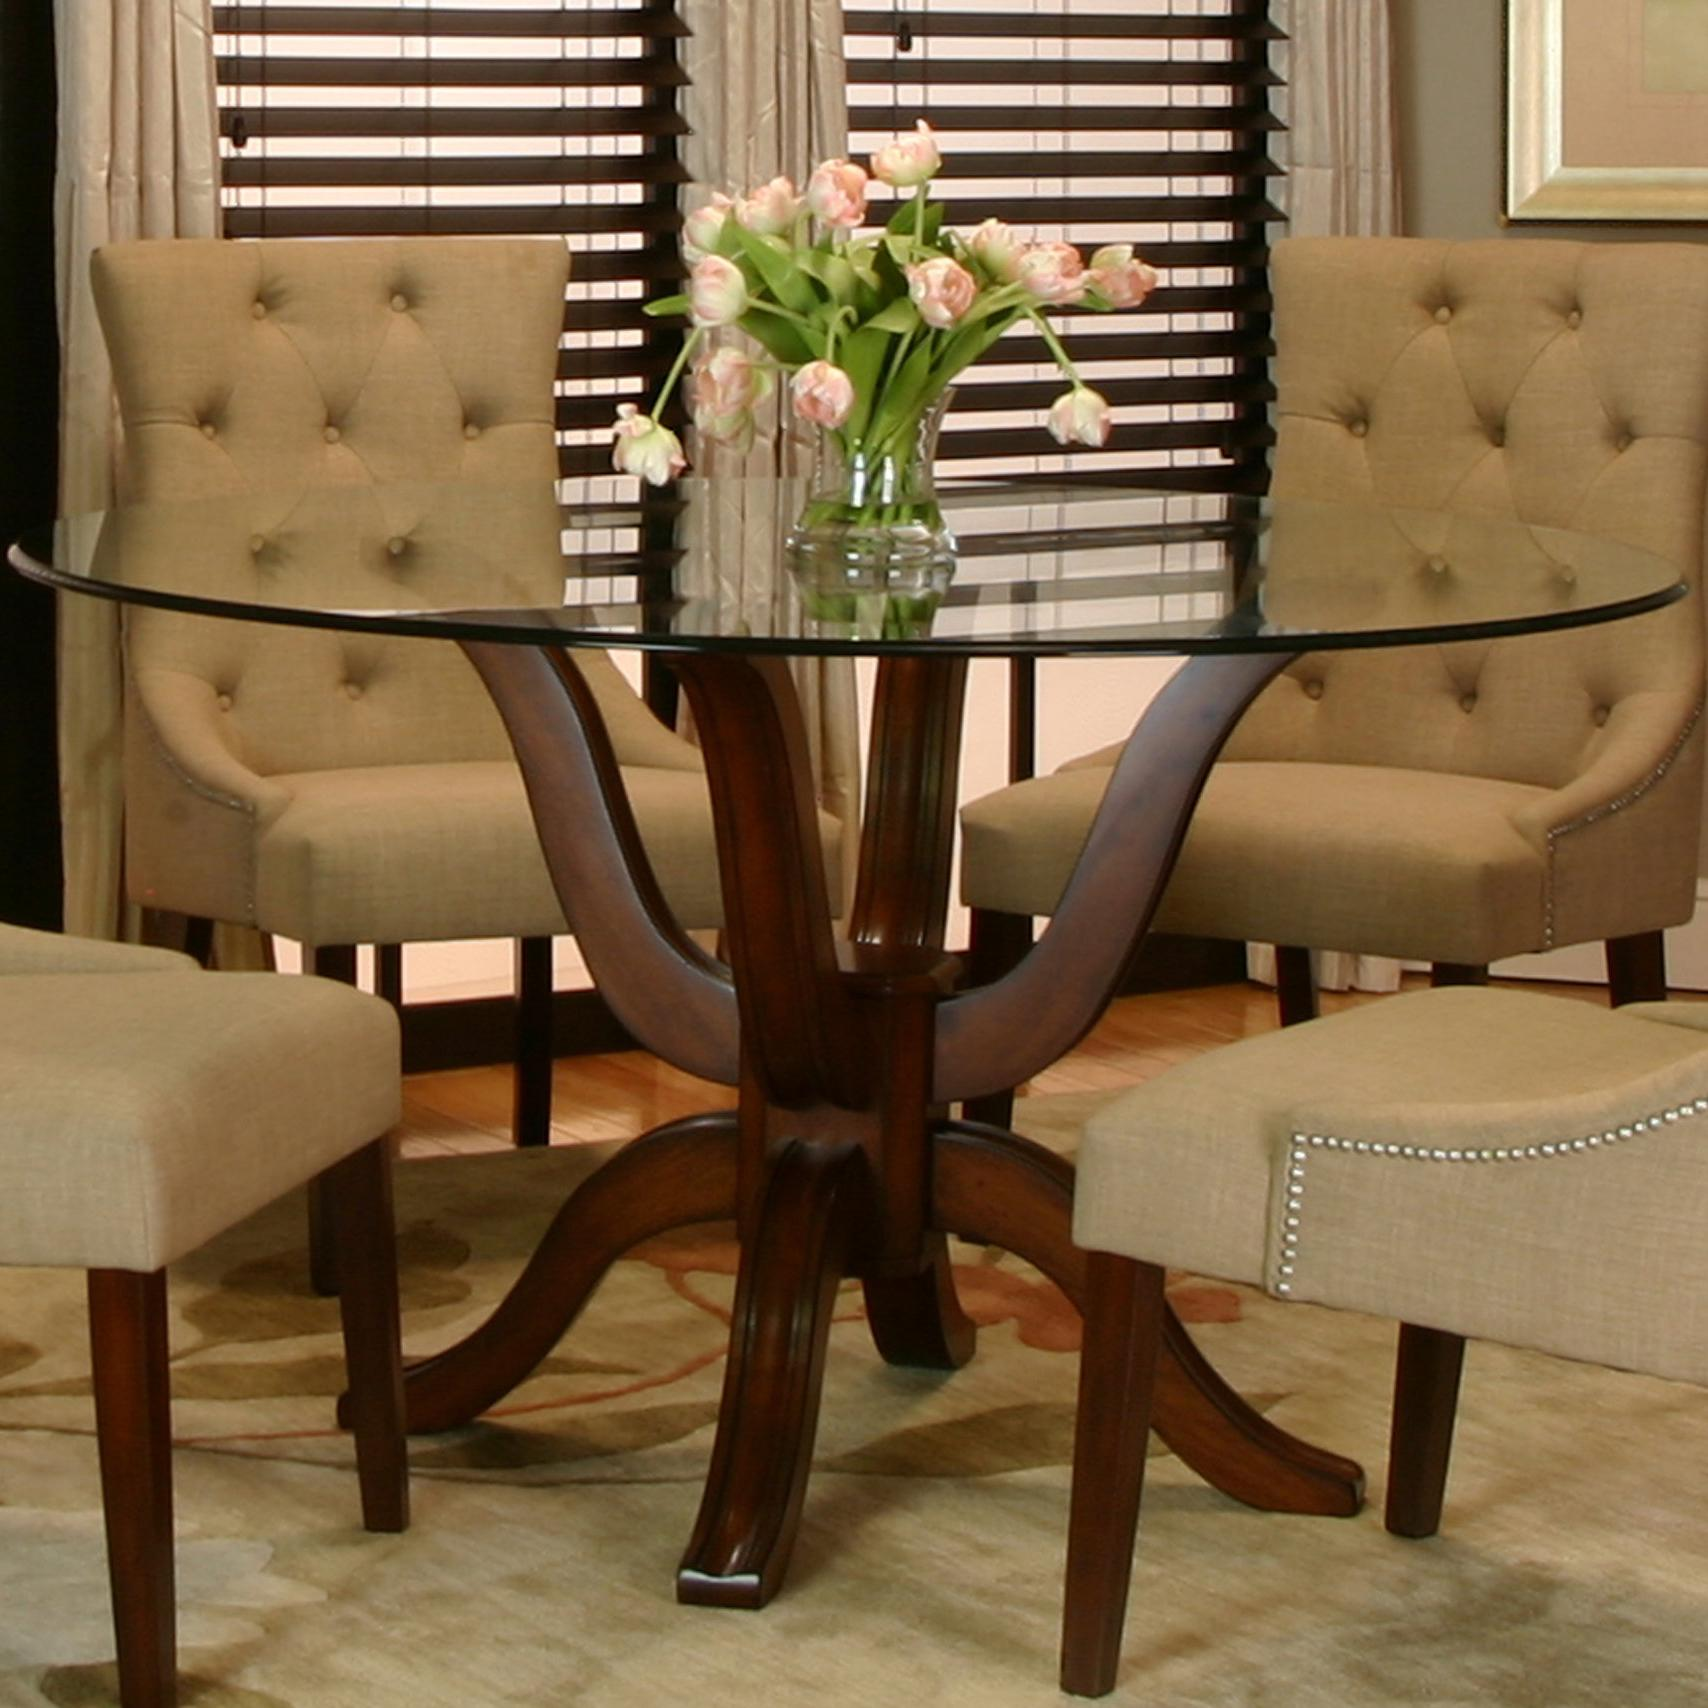 Round Glass Pedestal Dining Table cramco, inc sonnet round single pedestal table w/ glass top